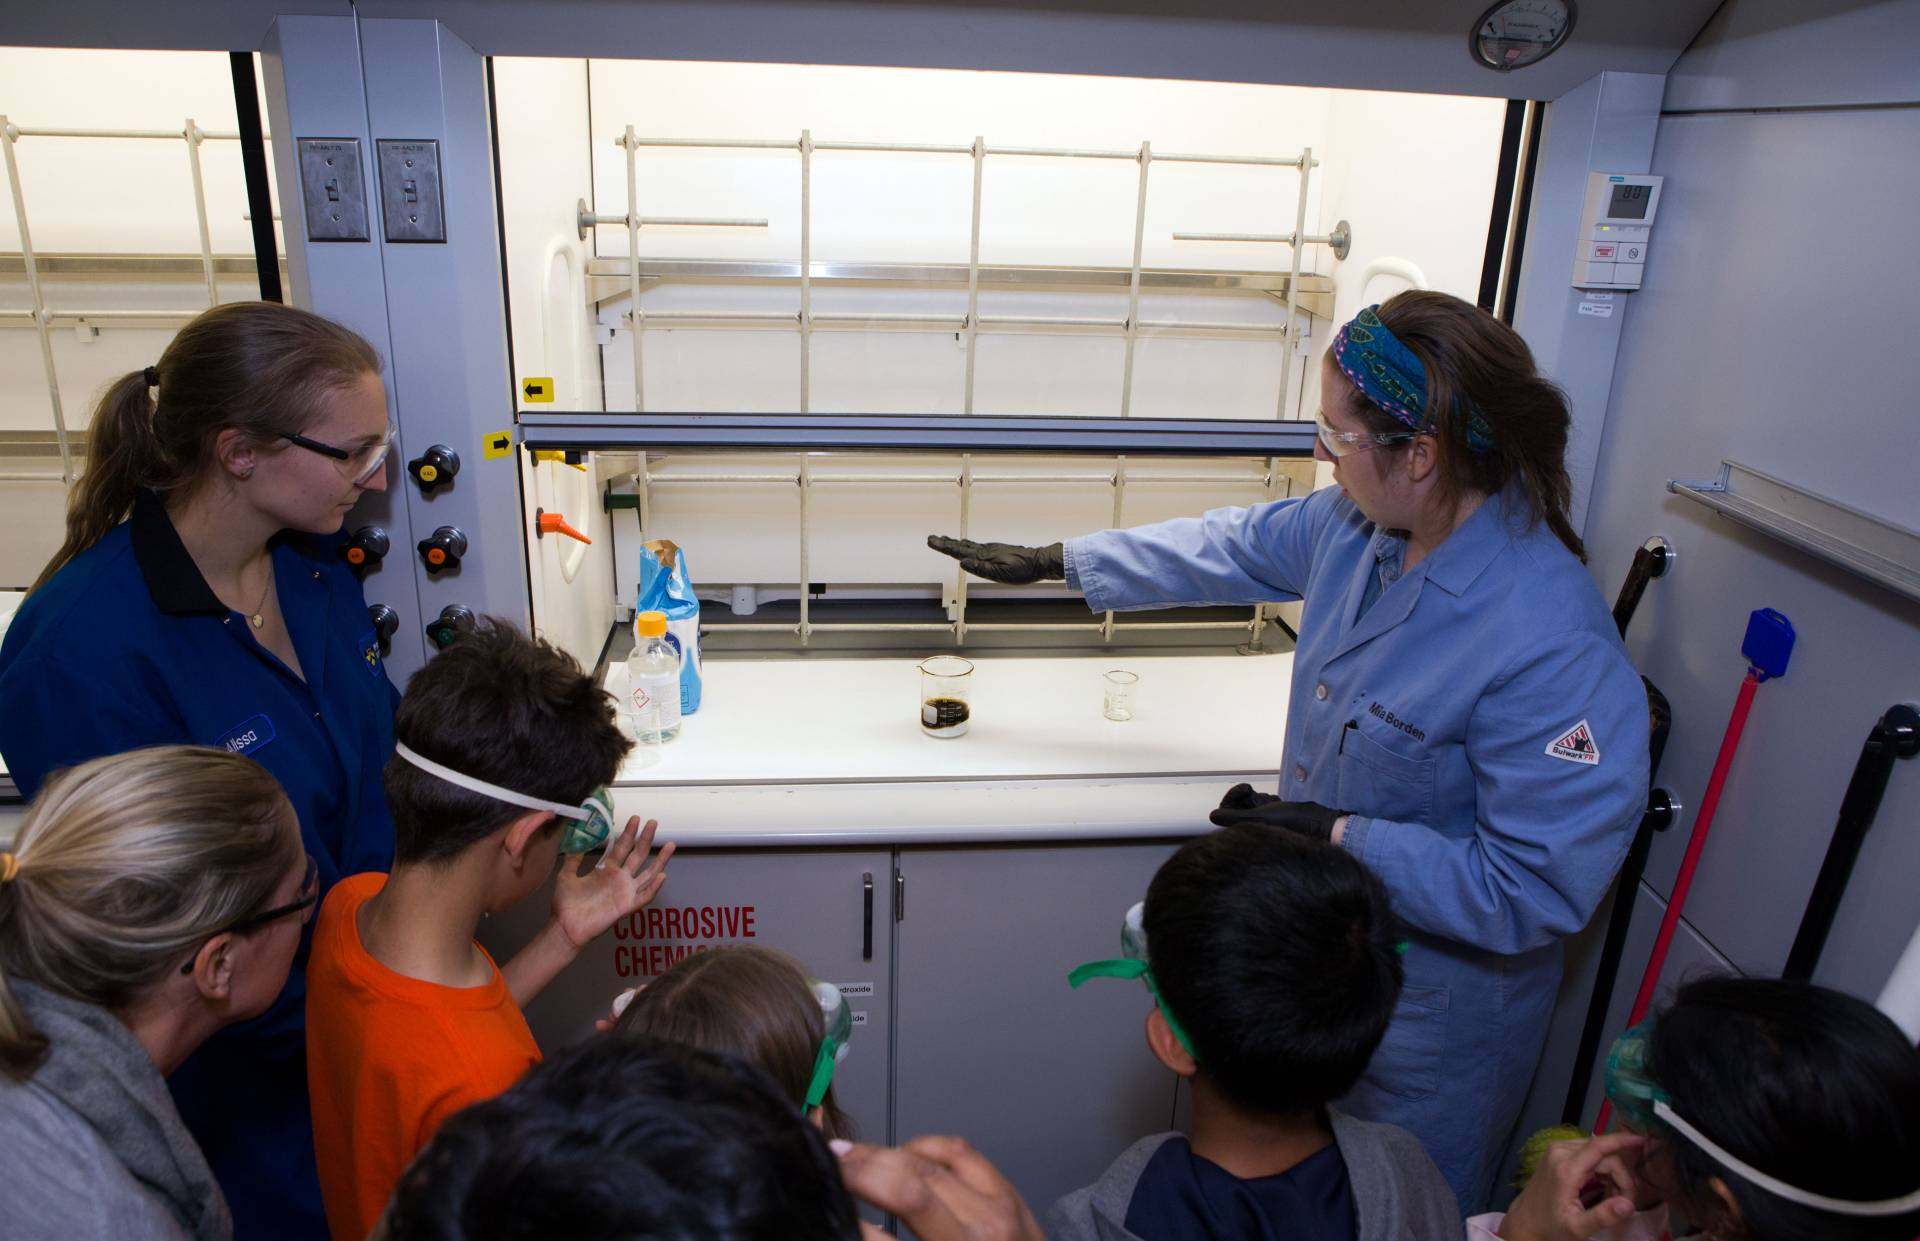 Graduate students show children how to make coal